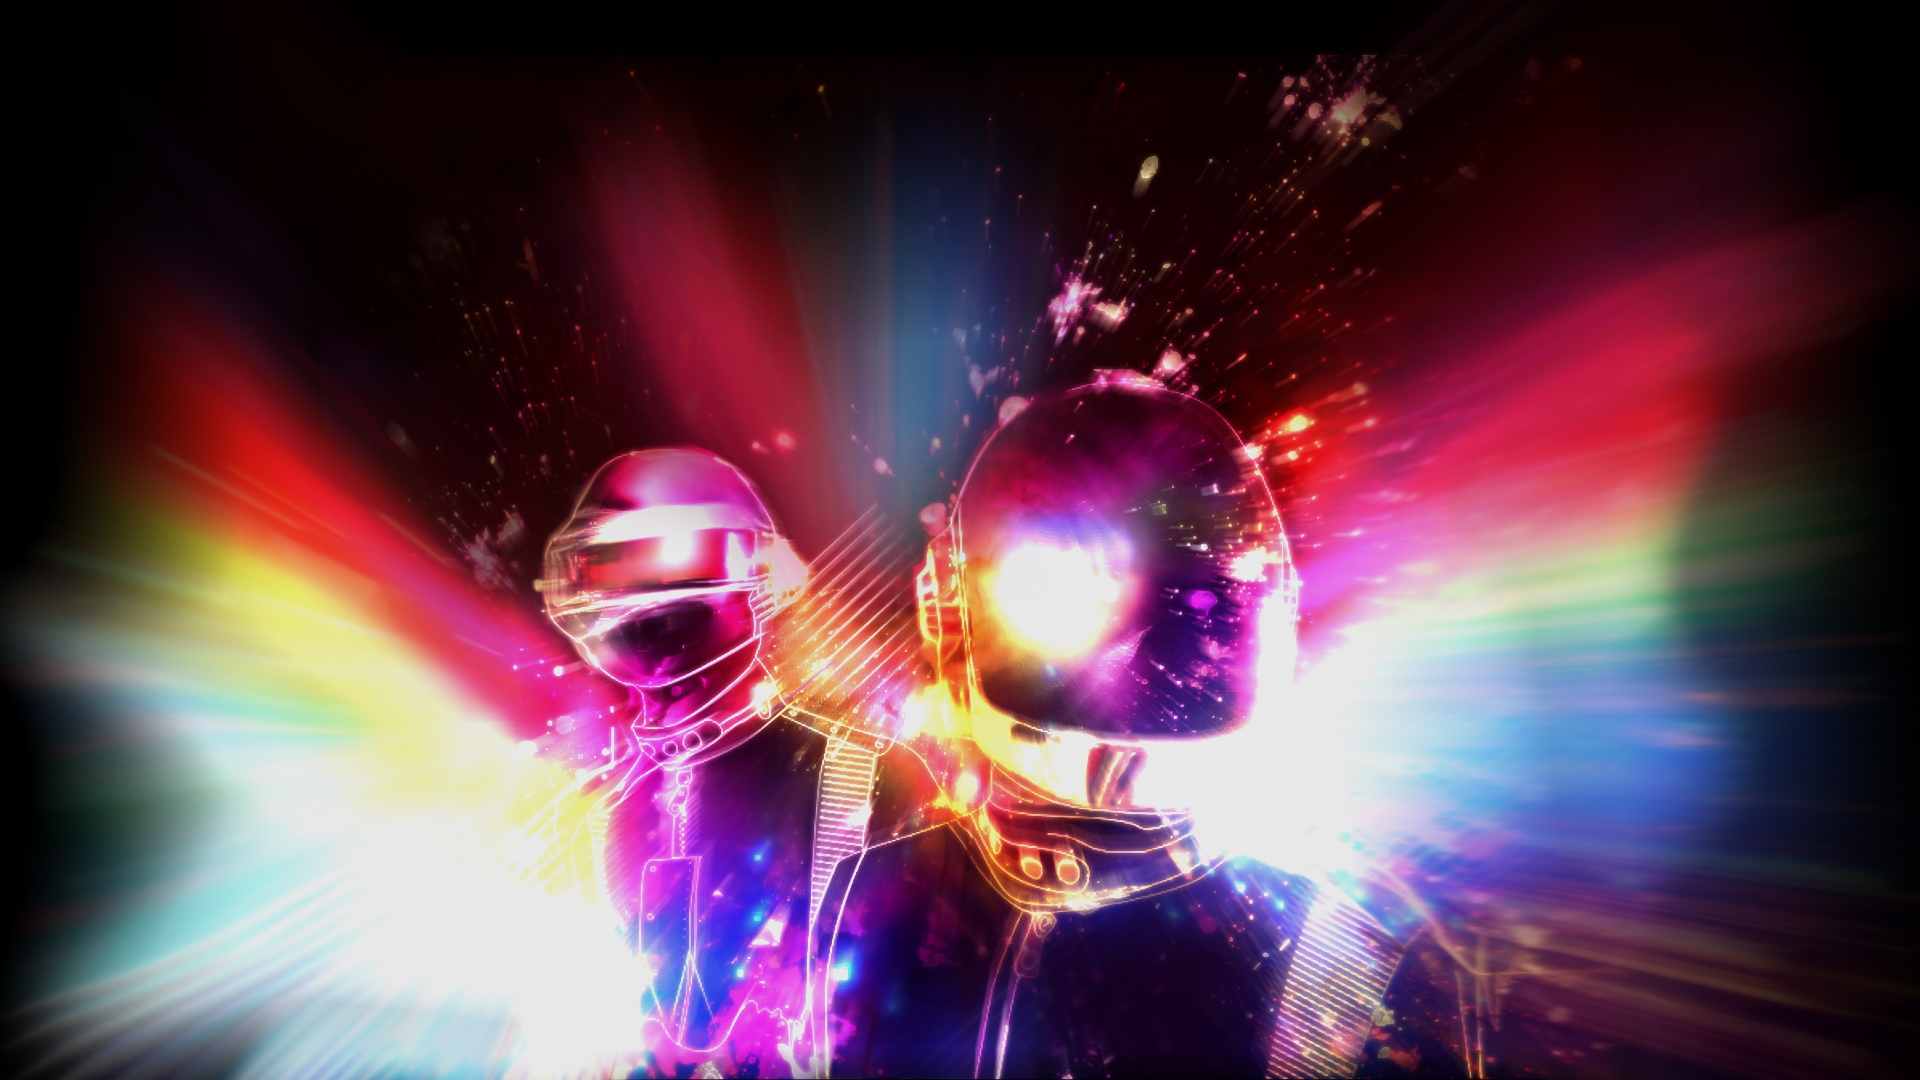 Dj Wallpaper Hd For Iphone Daft Punk Wallpapers High Quality Download Free